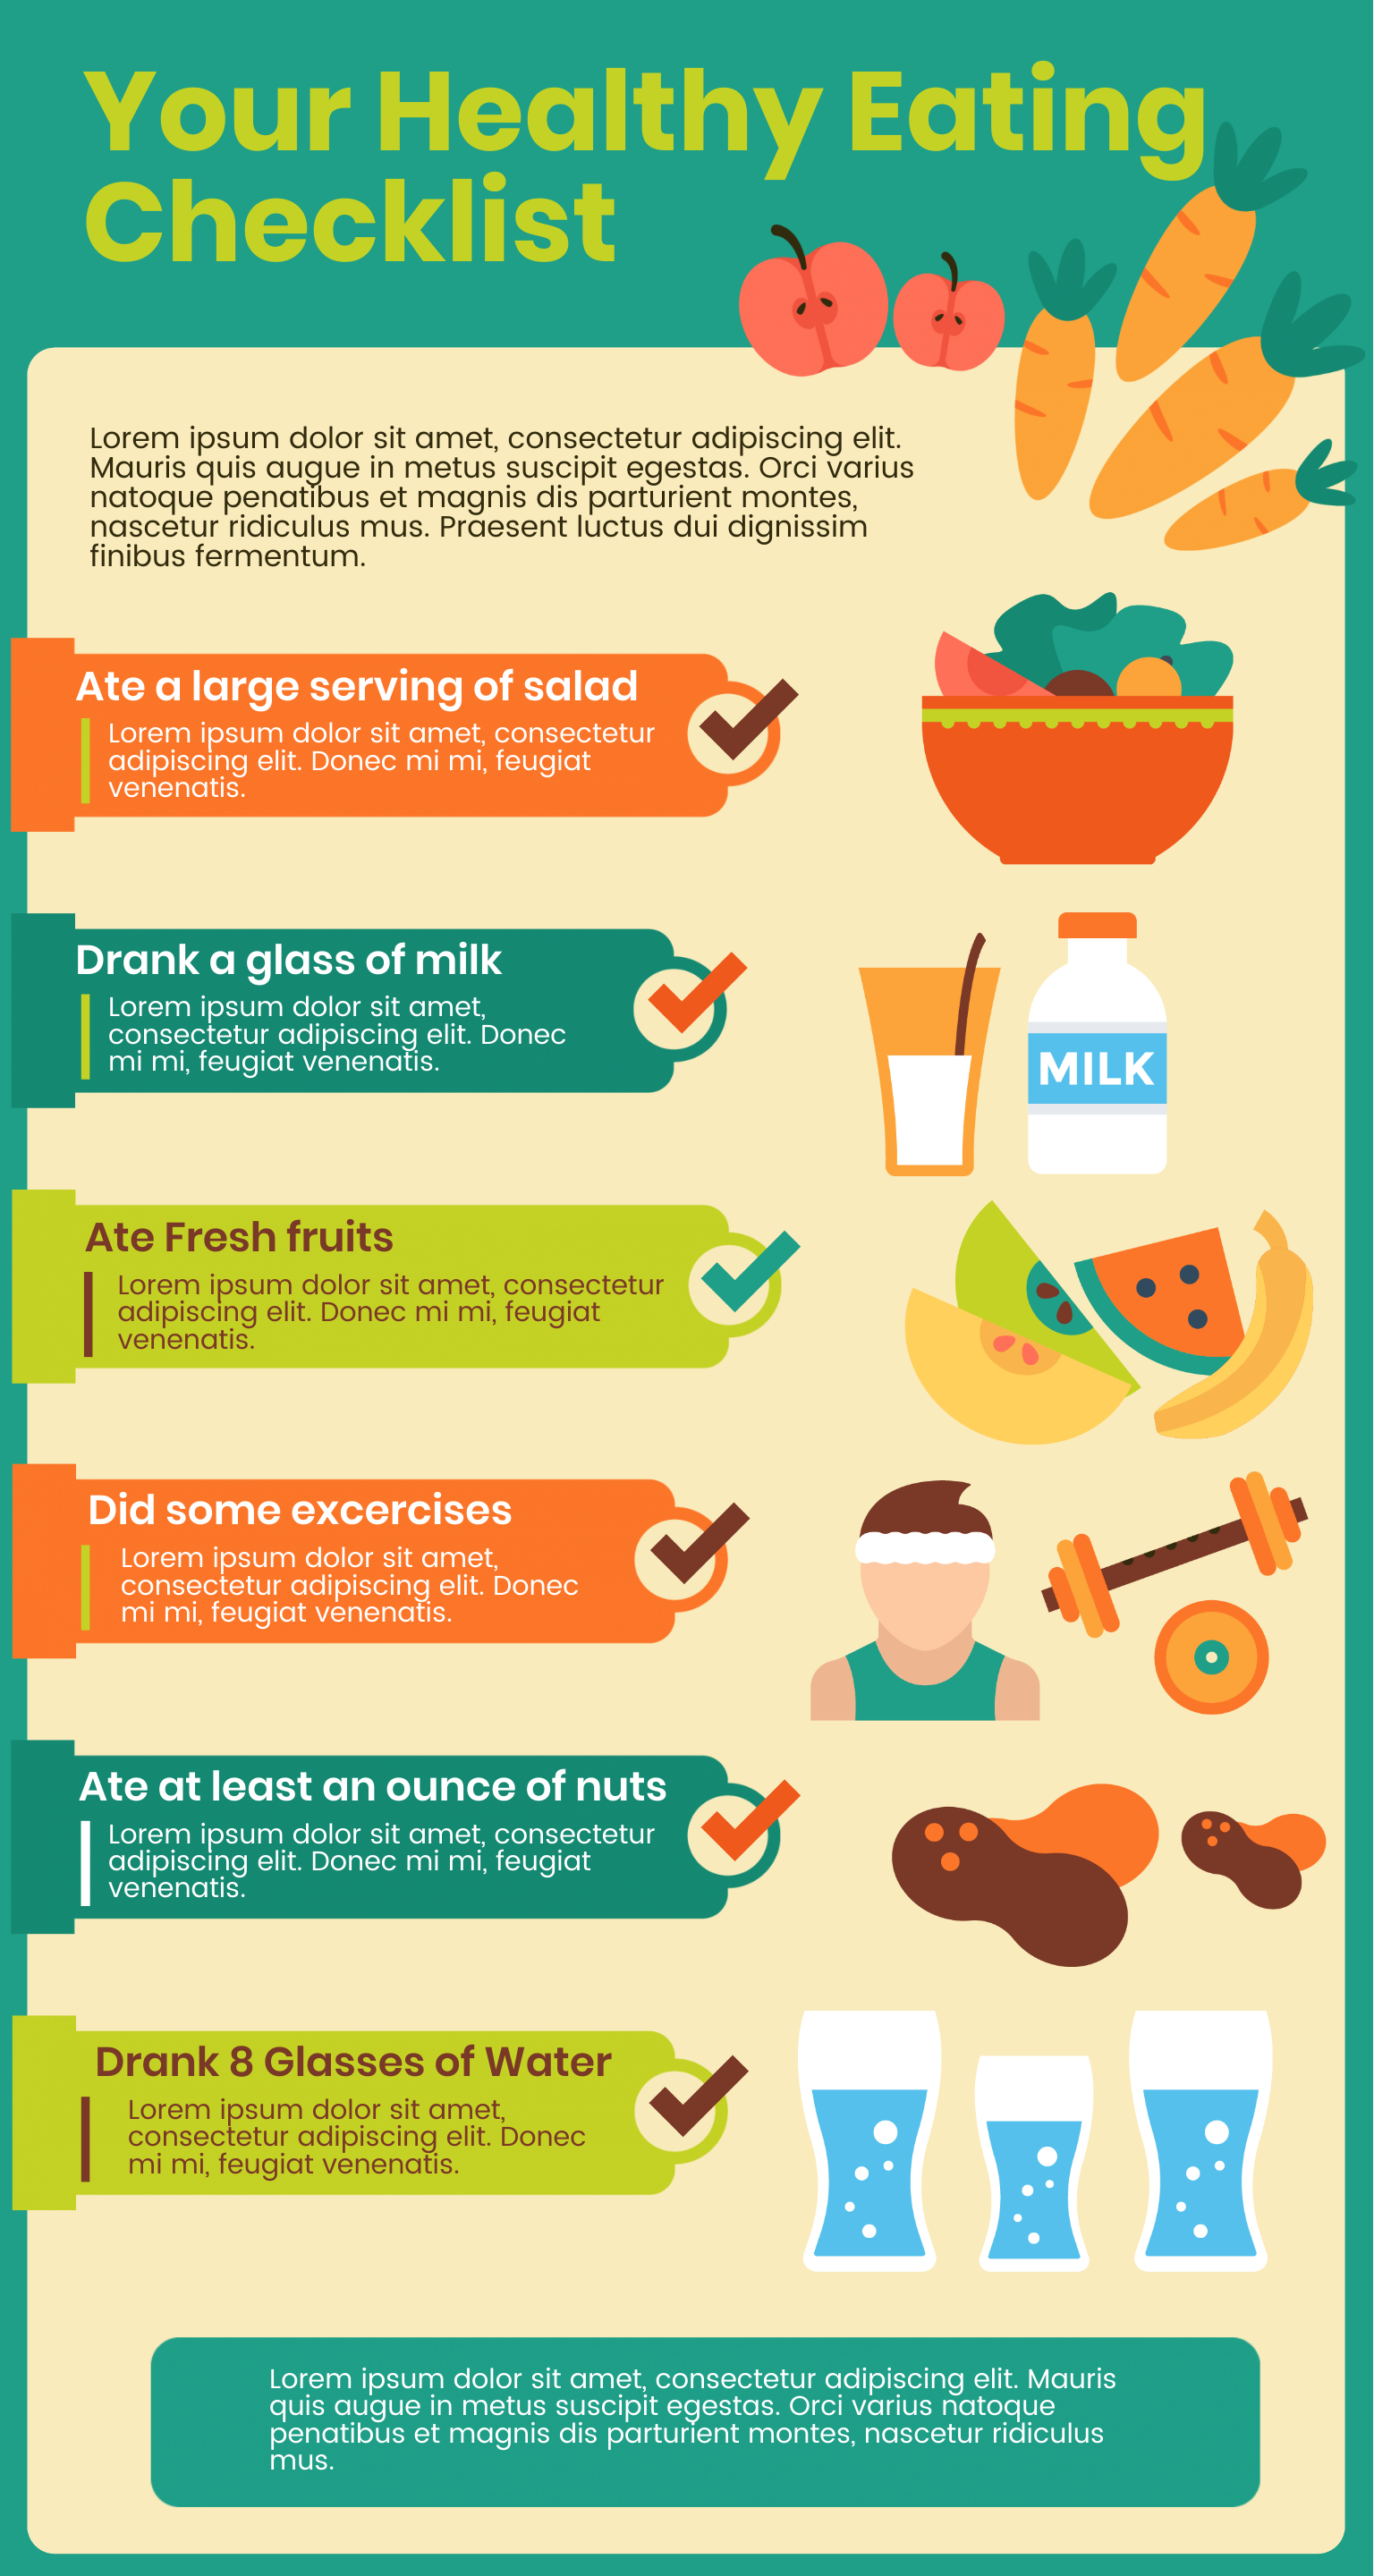 an infographic checklist for healthy eating.